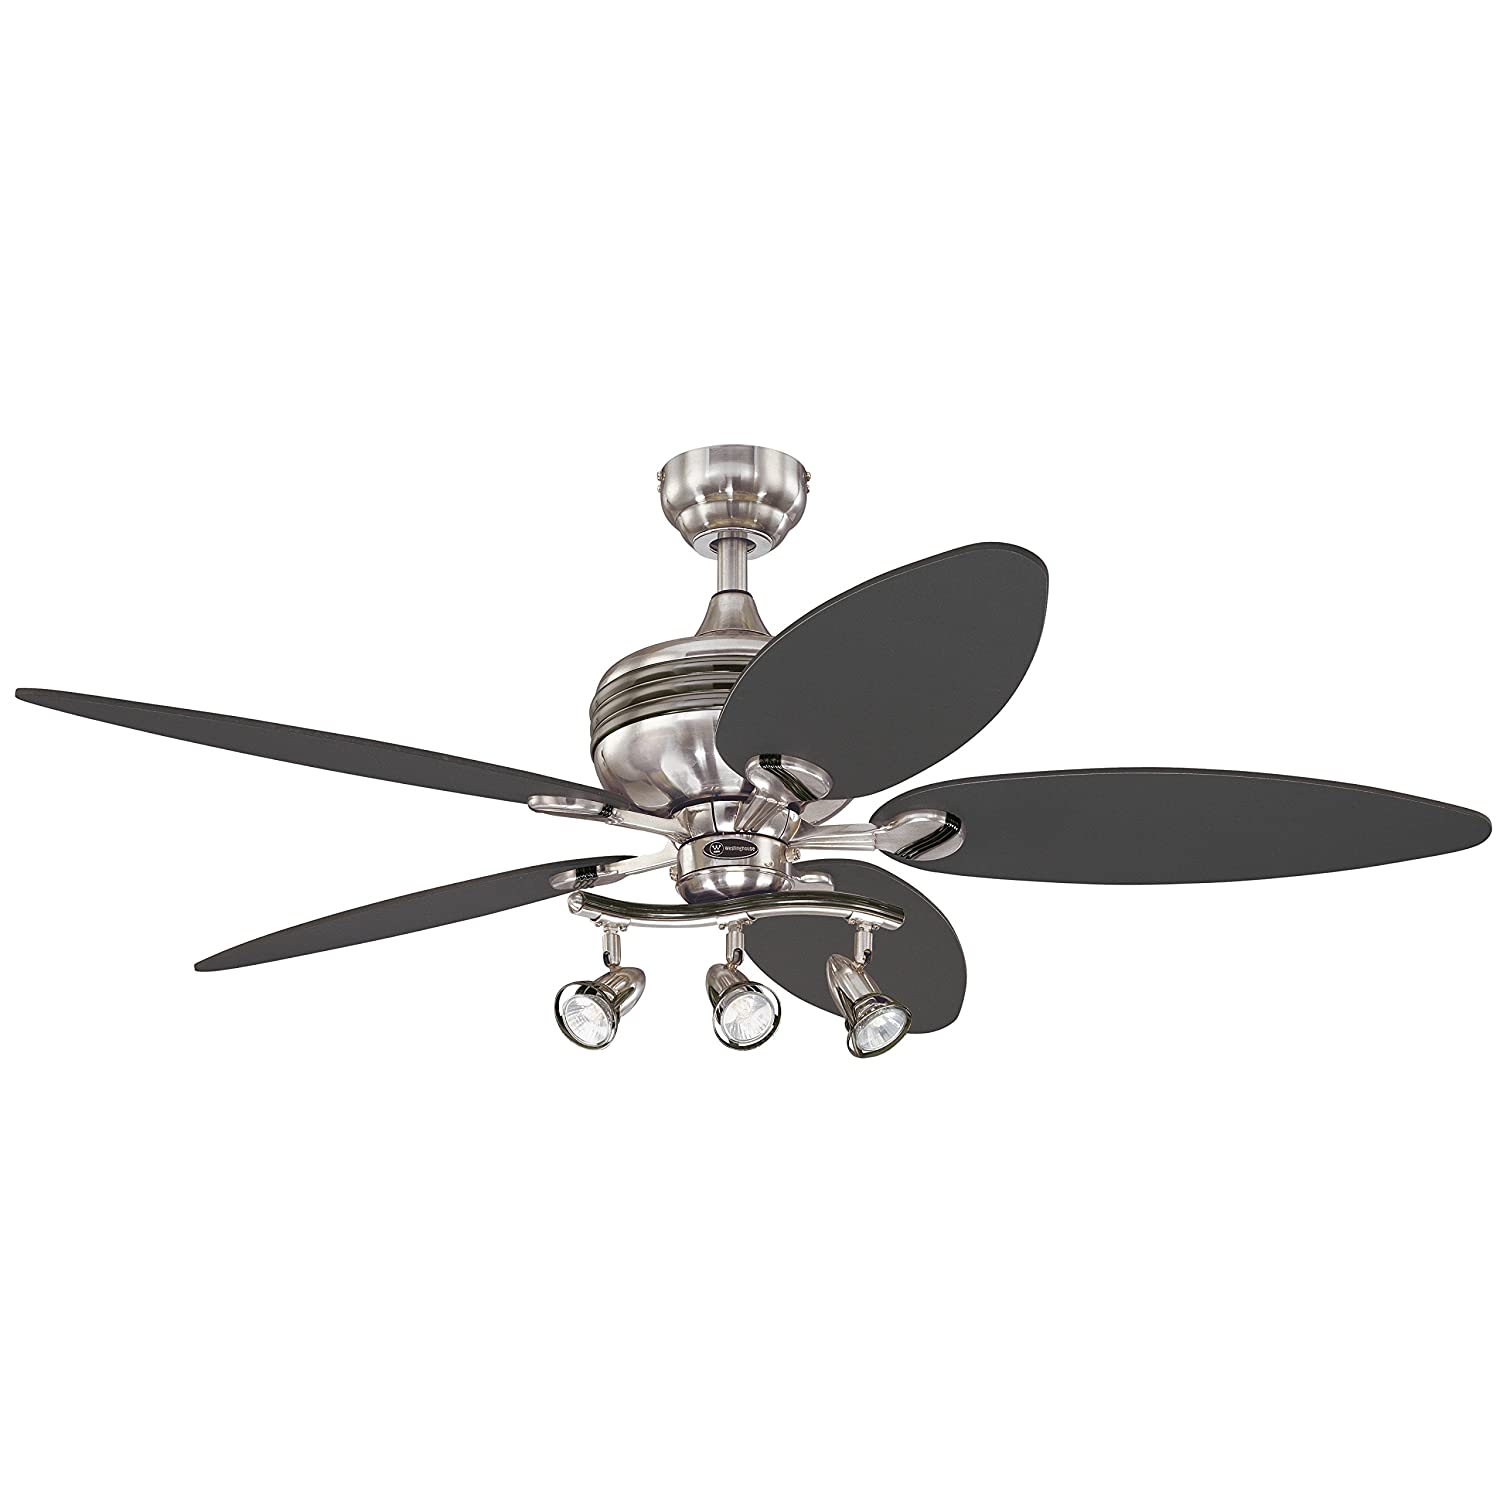 Superb Westinghouse 7234220 Xavier II 52 Inch Five Blade Indoor Ceiling Fan With  Three Spot